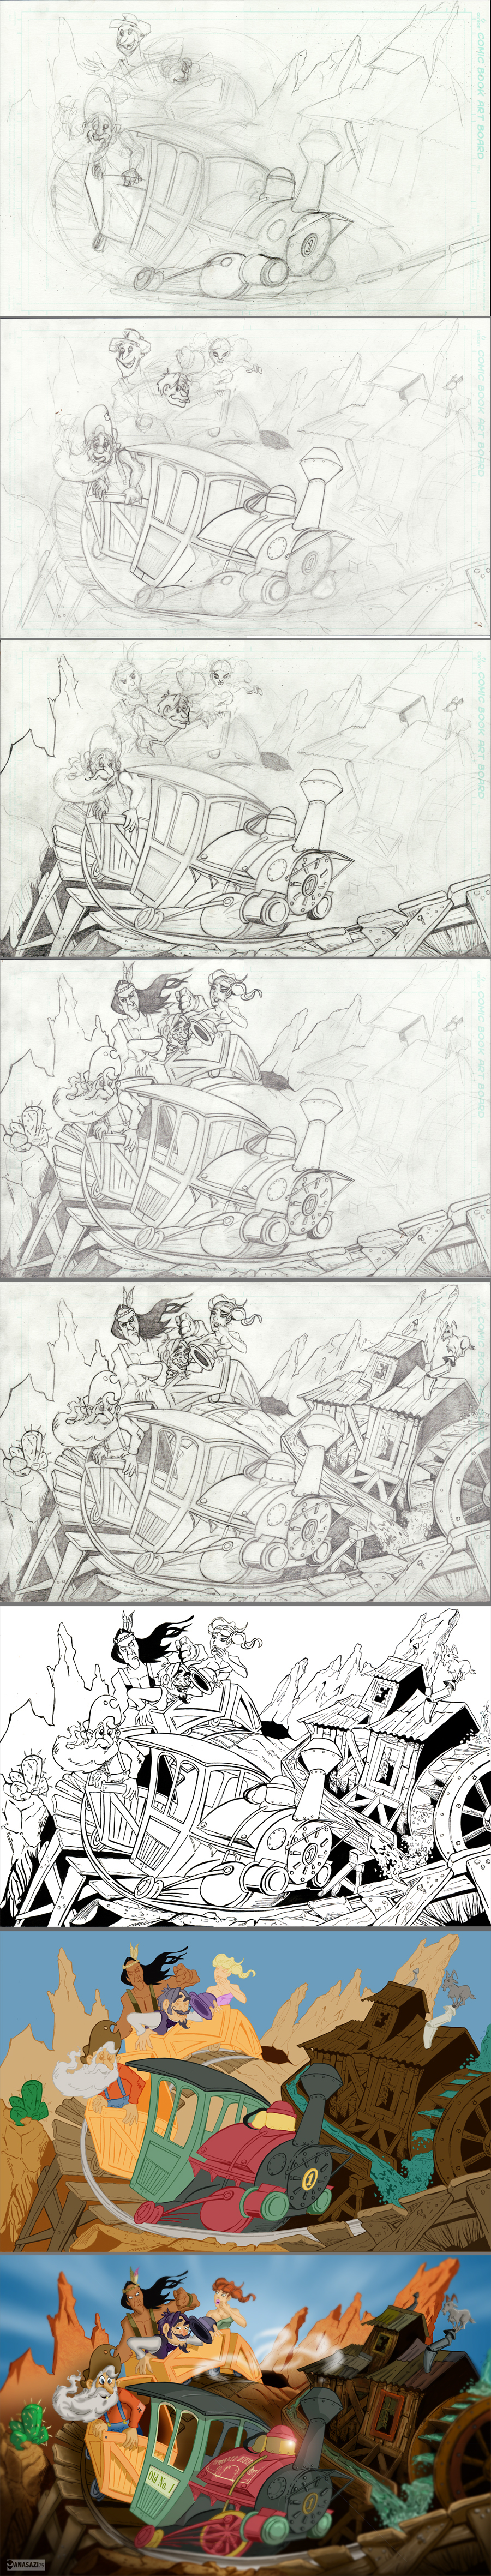 Big Thunder Mountain Process by KileyBeecher on DeviantArt